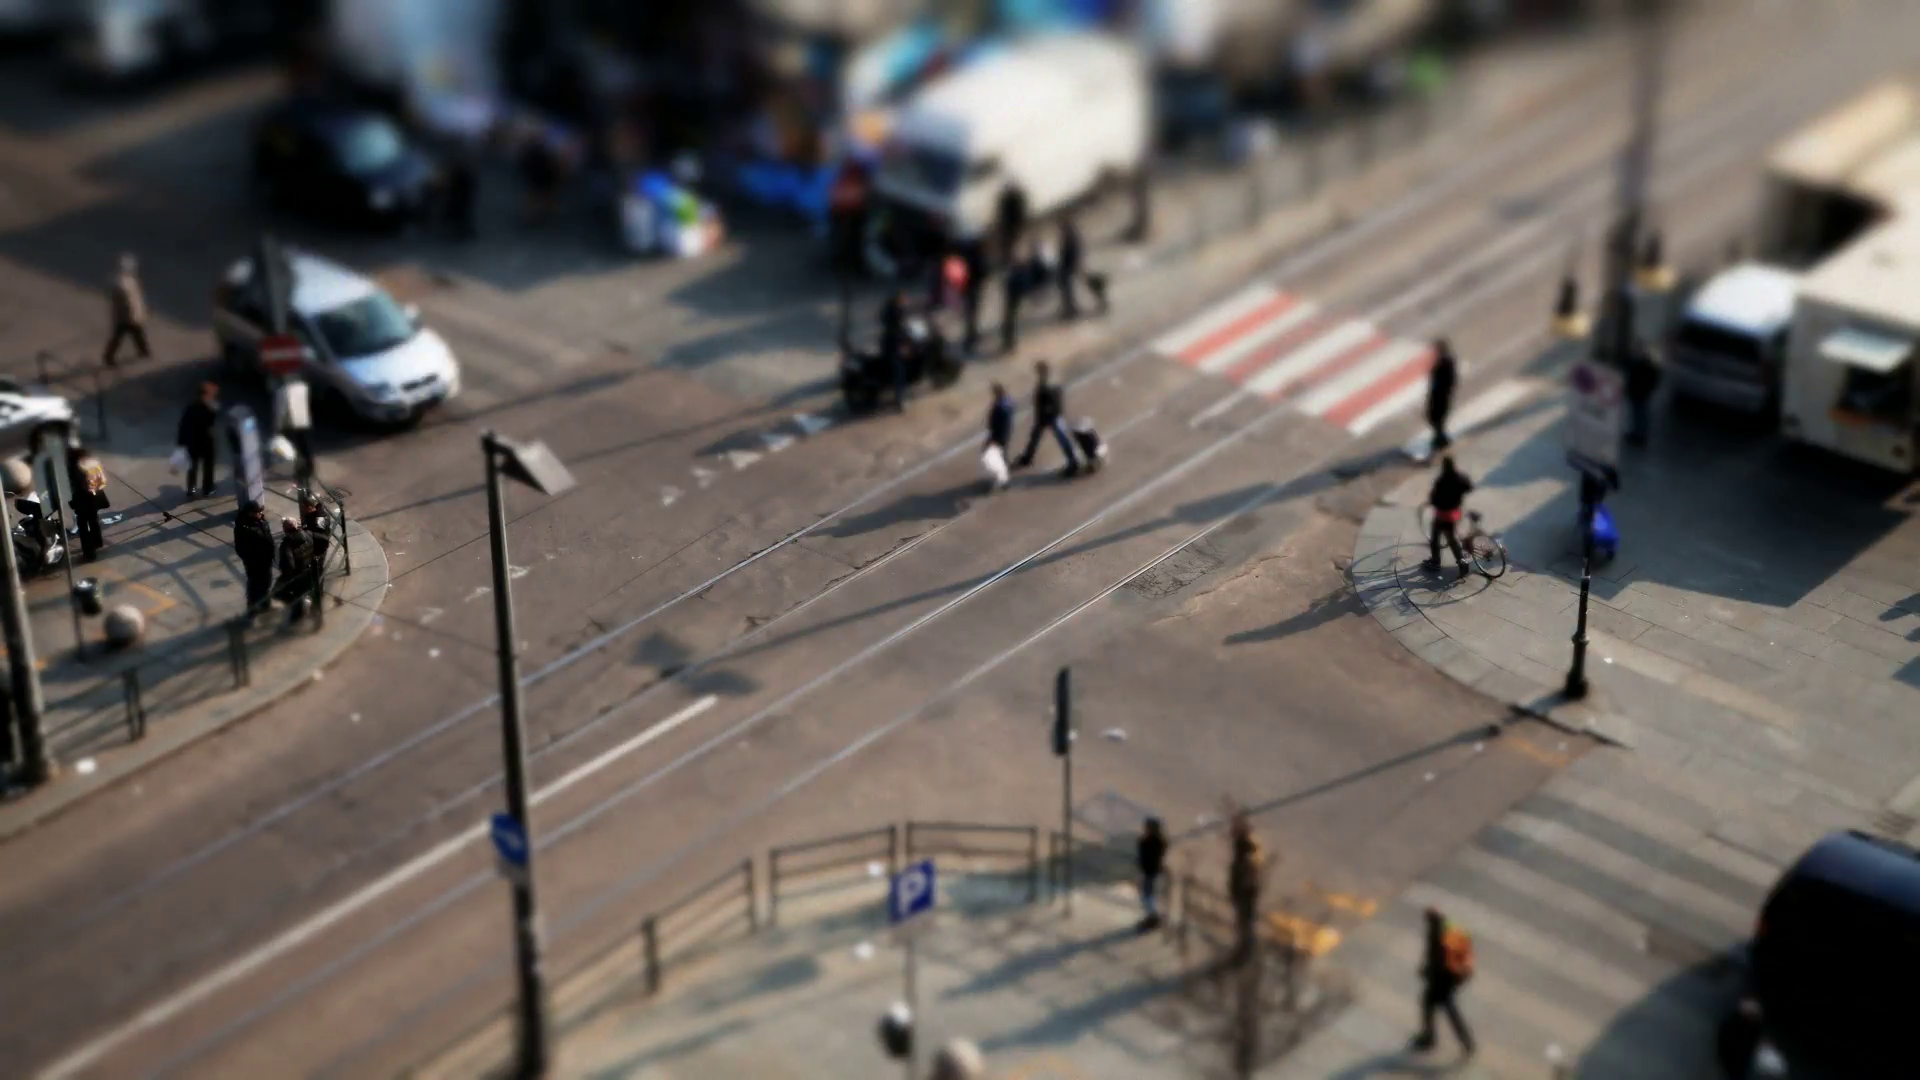 city-crossroad-tiltshift-timelapse-in-italy_htar80rw__F0000